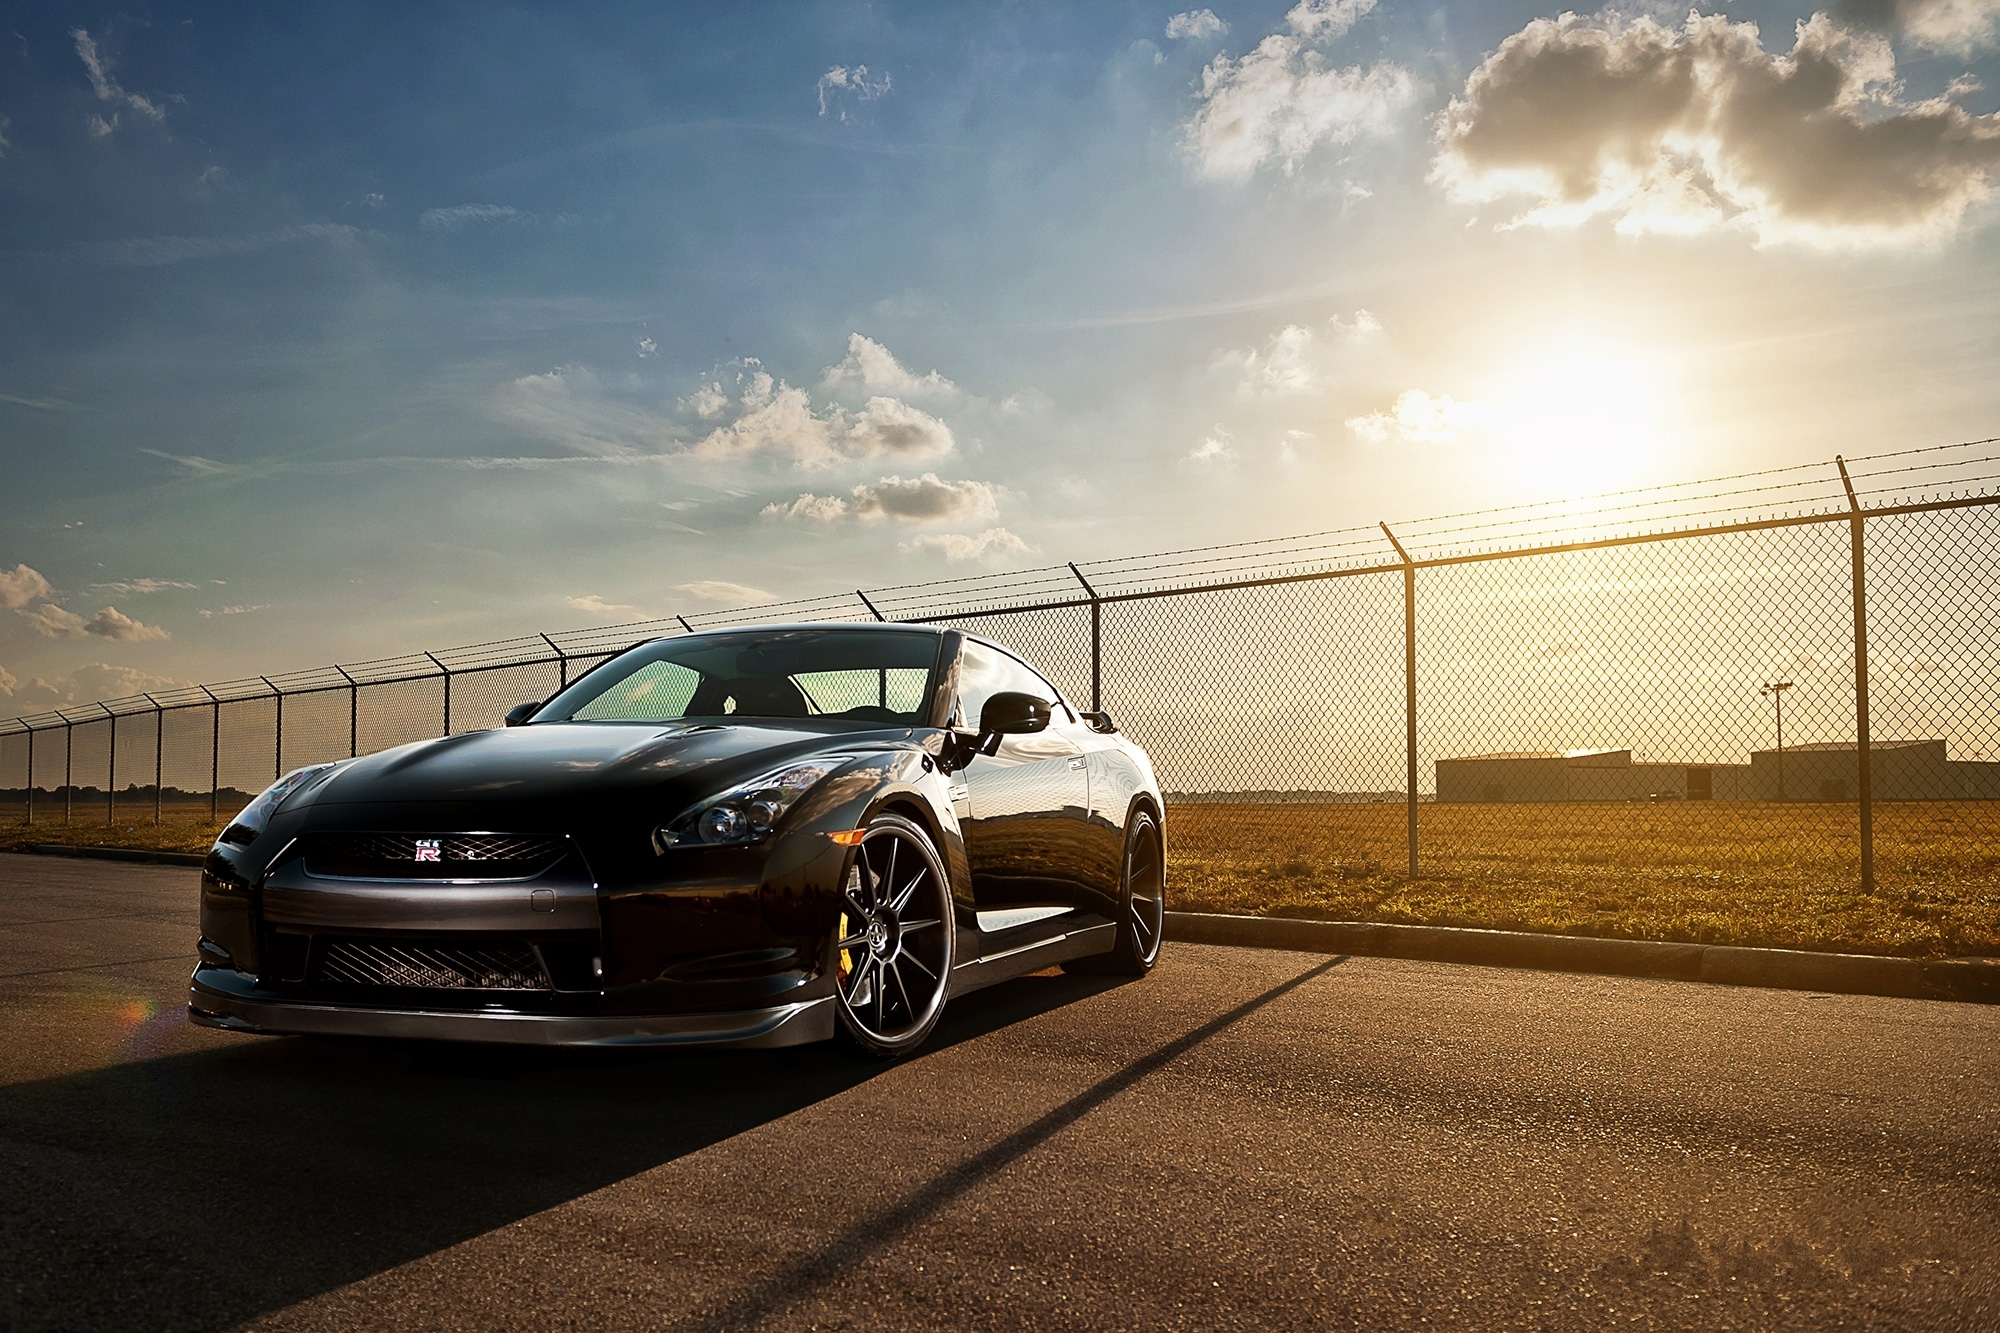 coolest gtr wallpapers - photo #20